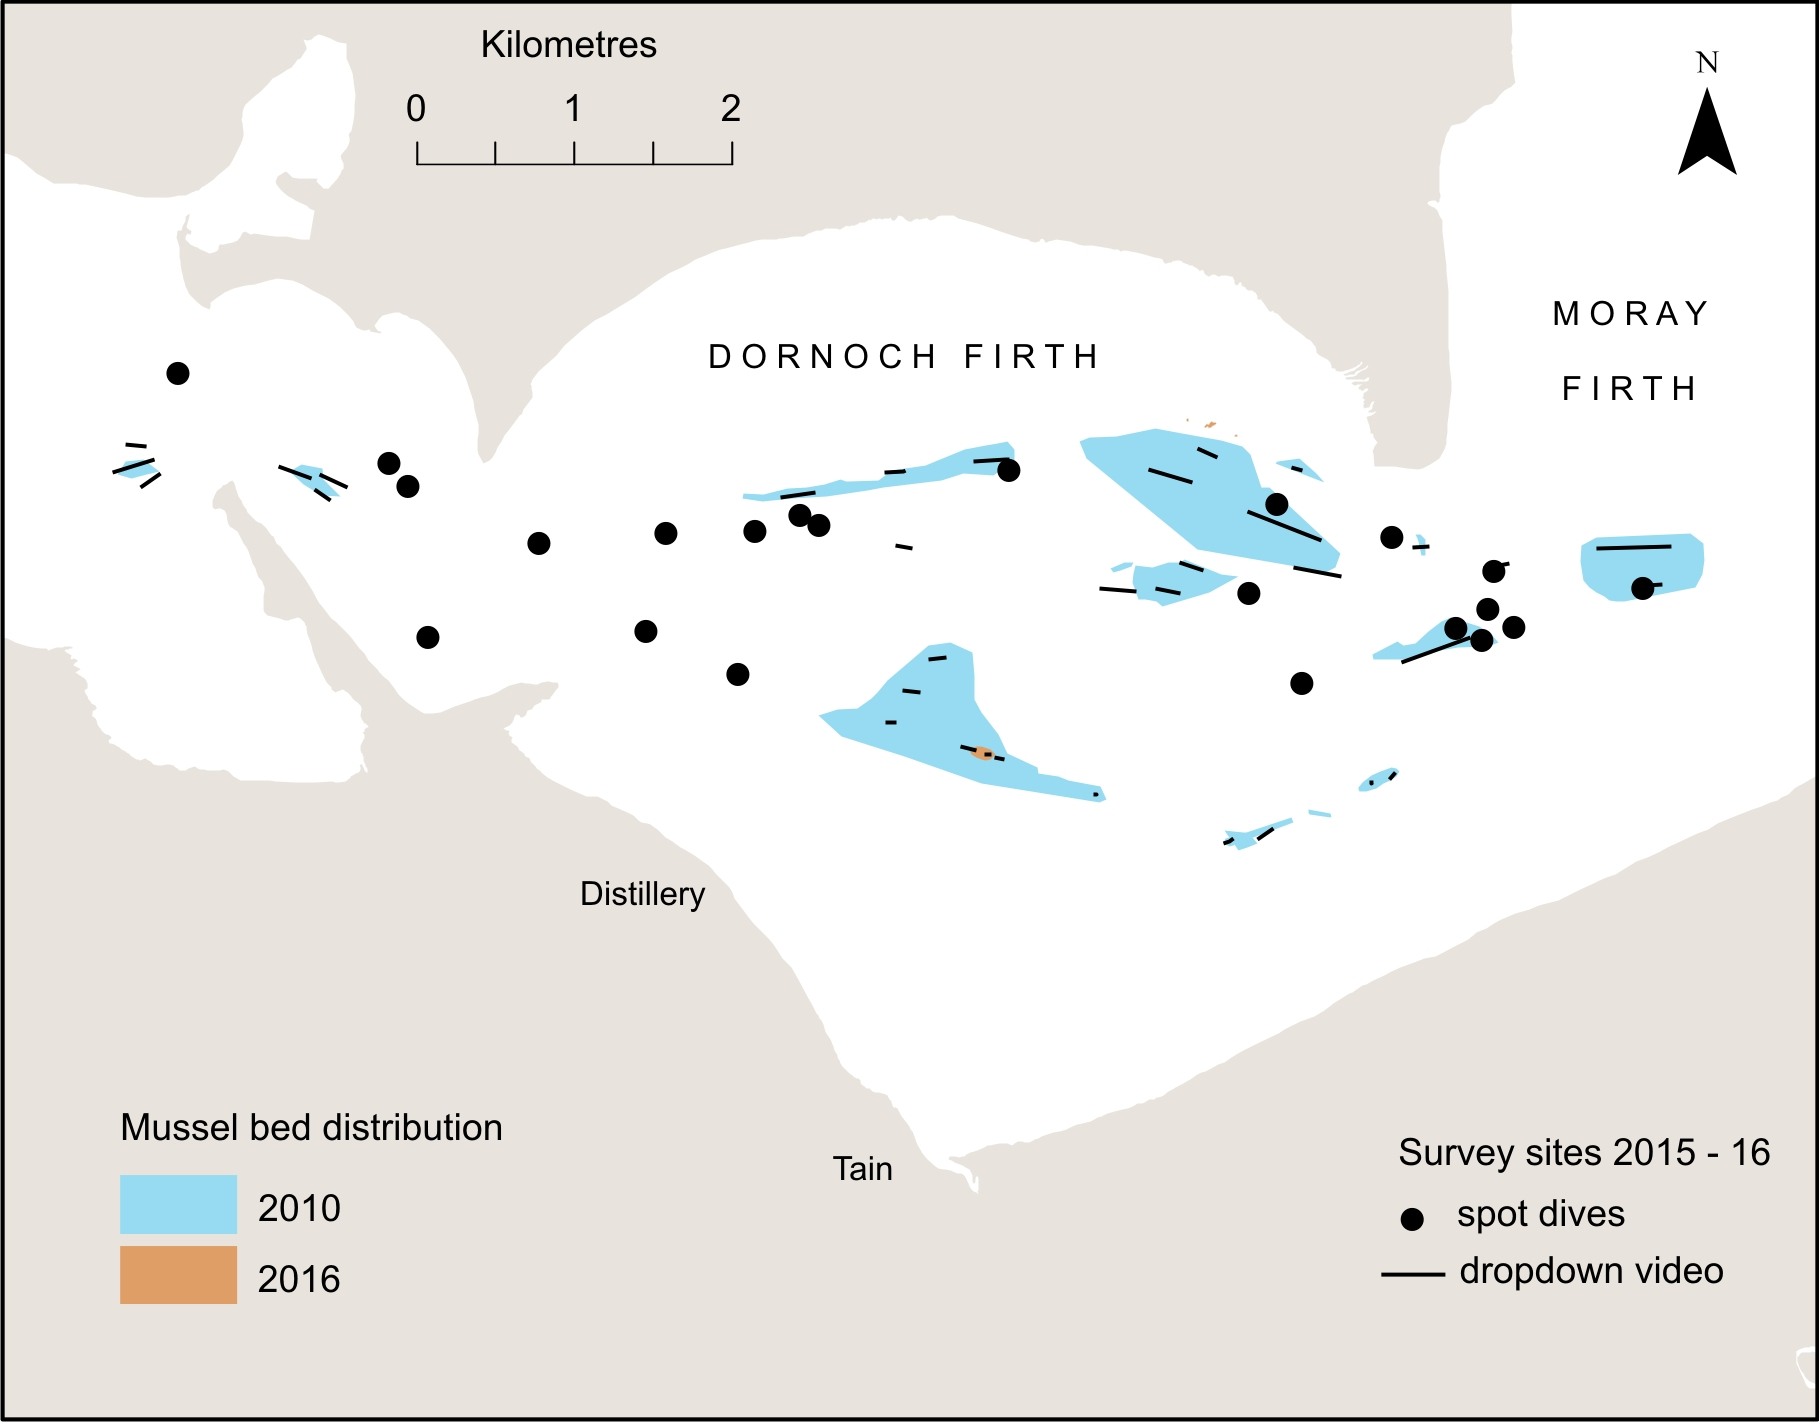 Distribution of subtidal blue mussel beds in the Dornoch Firth in 2010 and 2016.